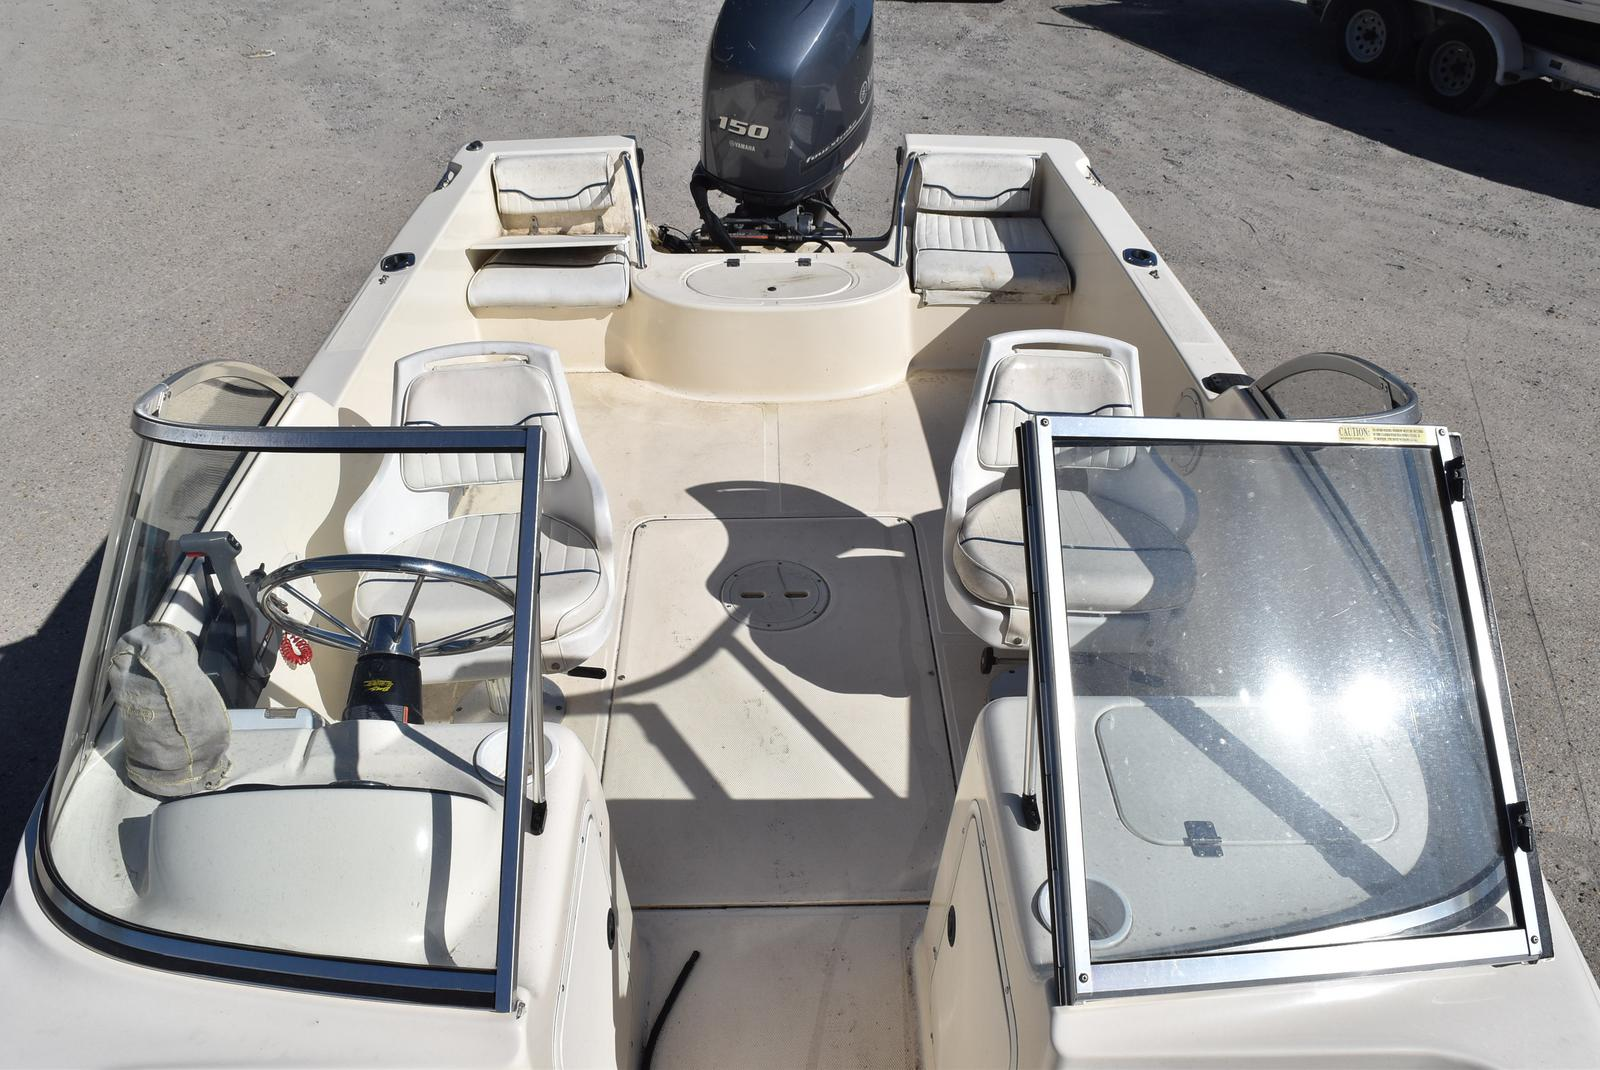 2003 Sea Hunt boat for sale, model of the boat is Escape 175 & Image # 10 of 16